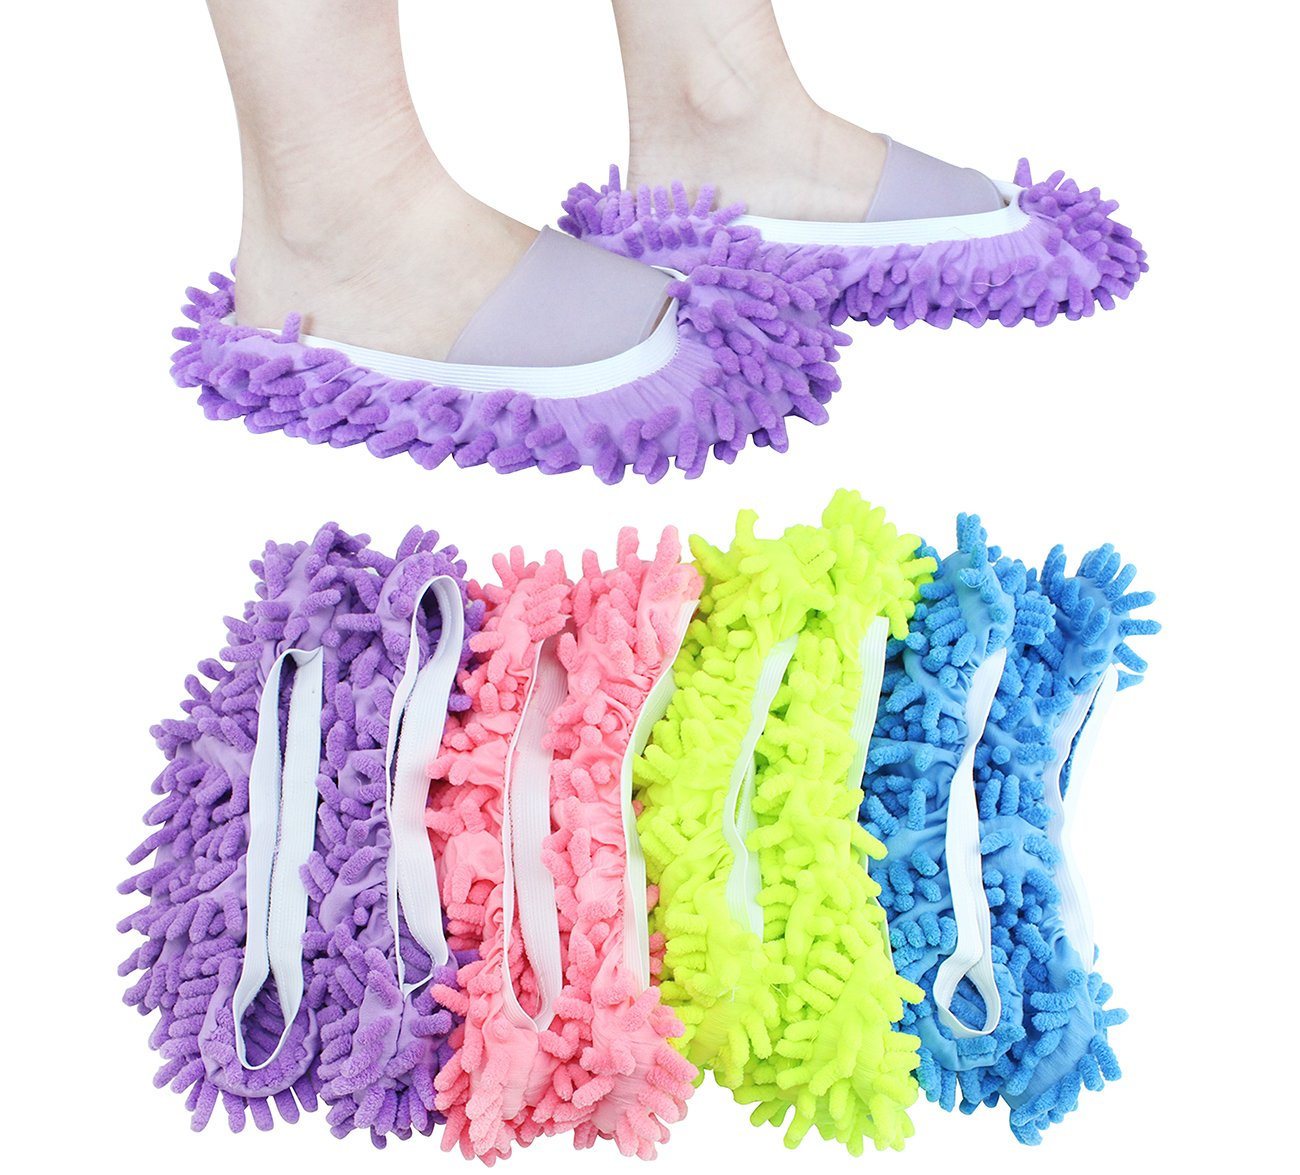 ZOND The Original Mop Slippers, Mop Sock, Assorted Colors, Dusting cleaning foot sock (4 Pairs 8 Pcs Total)